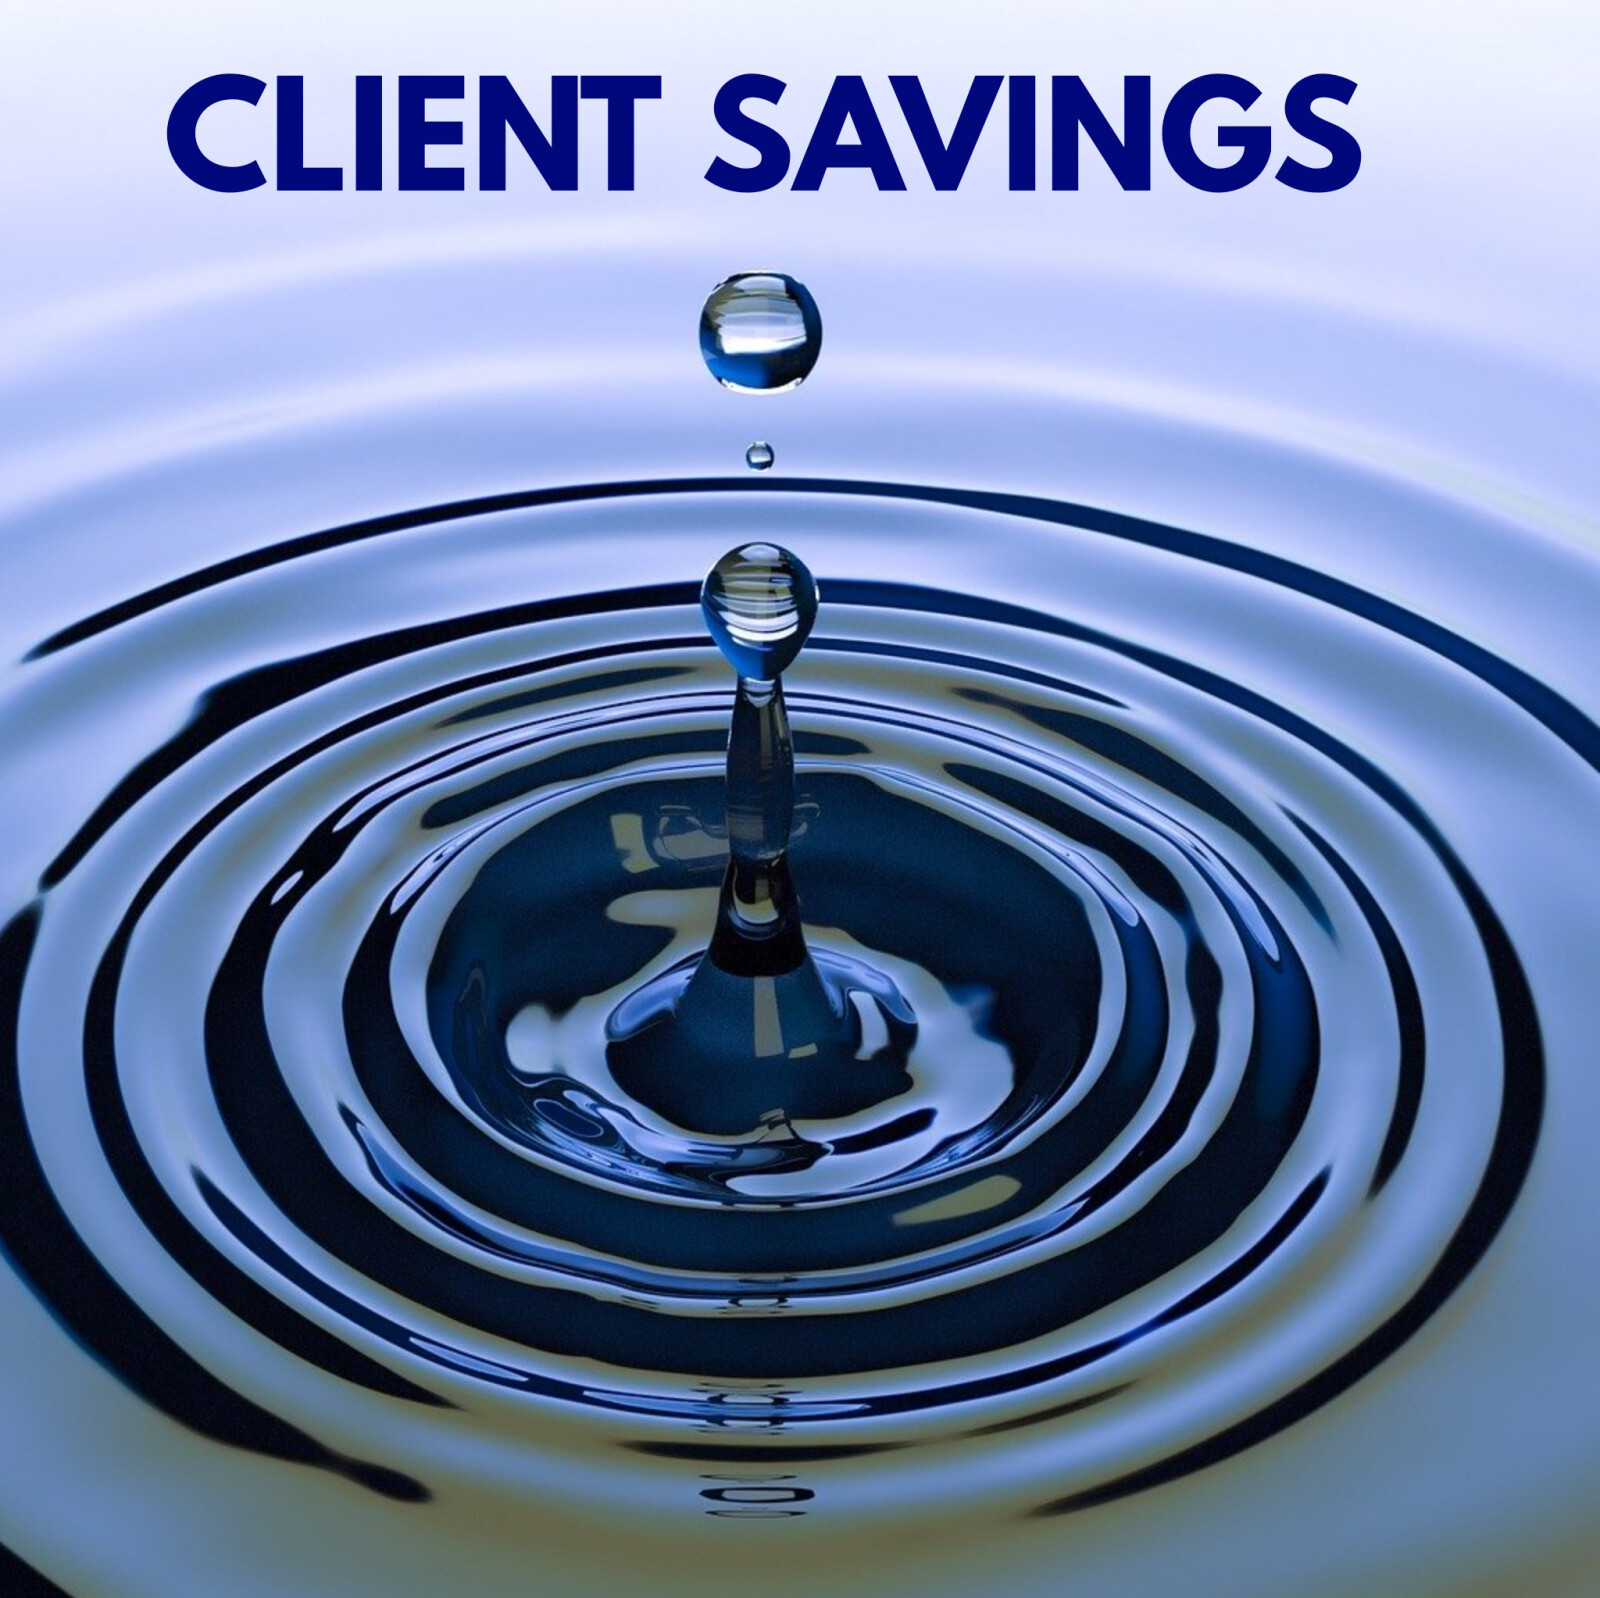 Client Savings